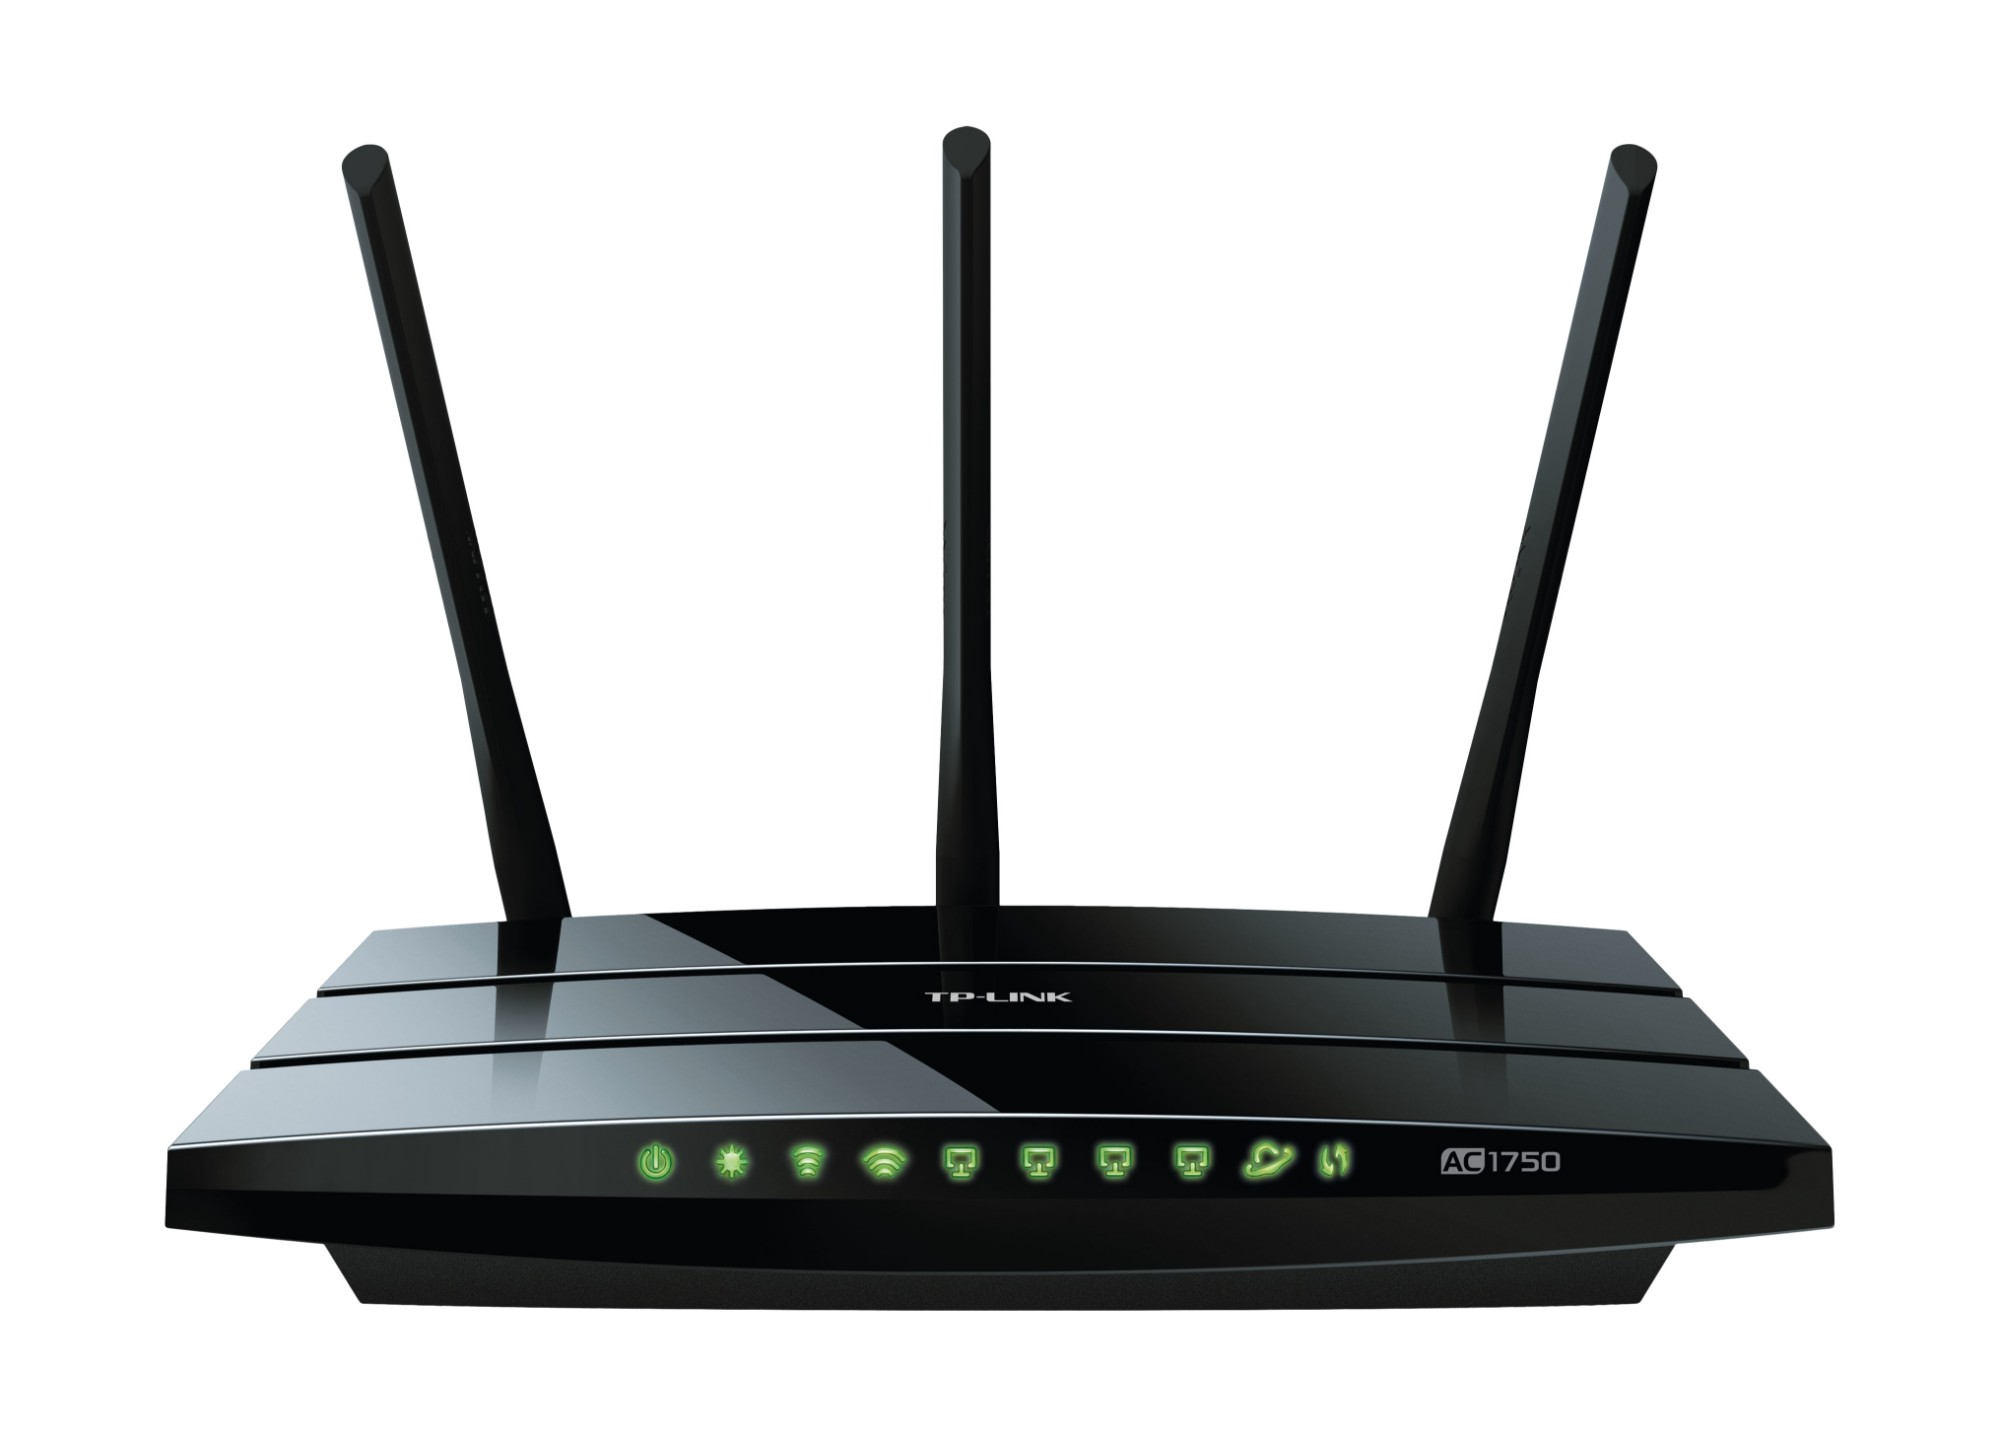 TP-Link Archer C7 AC1750 4-Port Wi-Fi Dual Band Gigabit Cable Router with USB UK